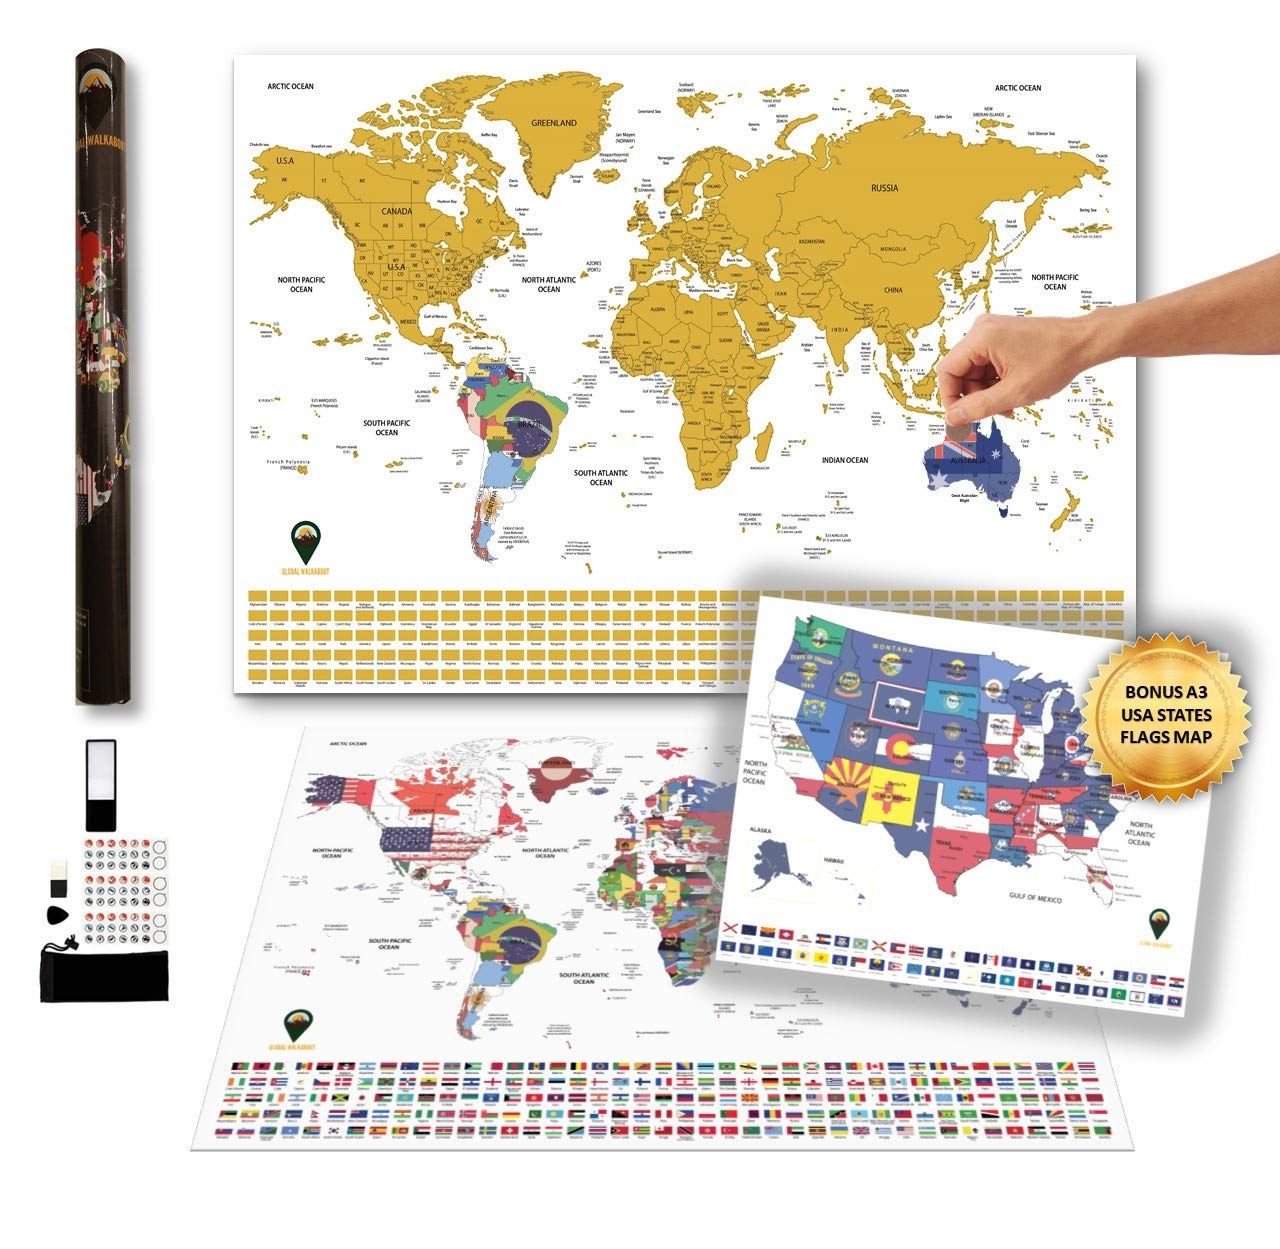 Scratch Off XXL World Flags Map with Bonus A3 USA map - Country/State Flags Under Scratch Off Areas – Countries, States and Accessories – Travel Gift (Black) - GLOBAL WALKABOUT